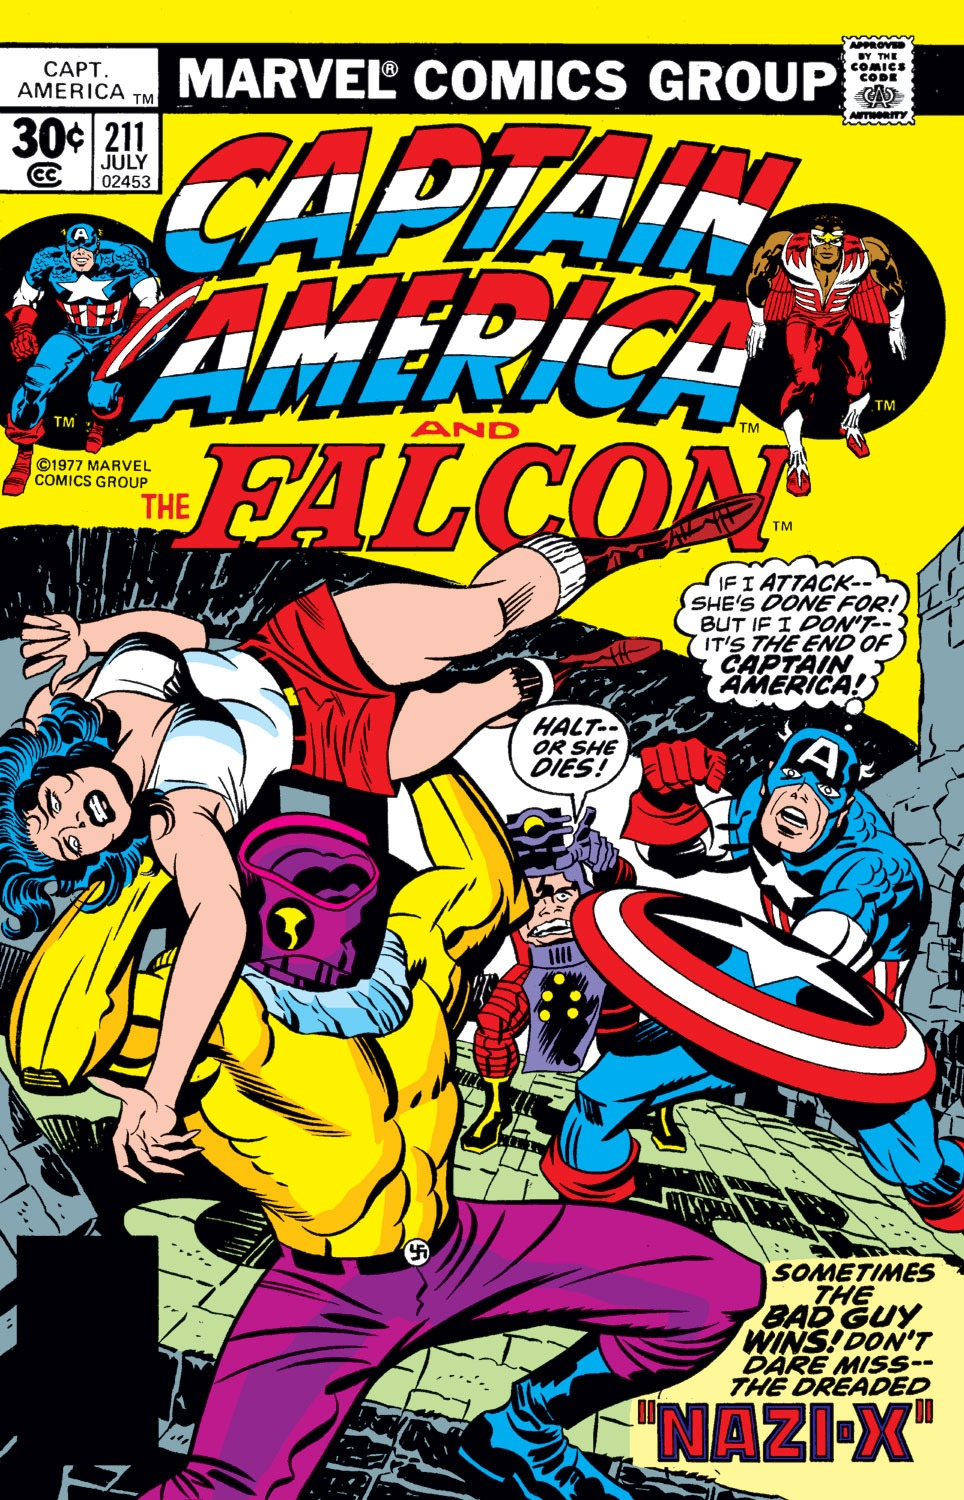 Captain America (1968) #211, cover penciled by Jack Kirby & inked by Mike Royer.